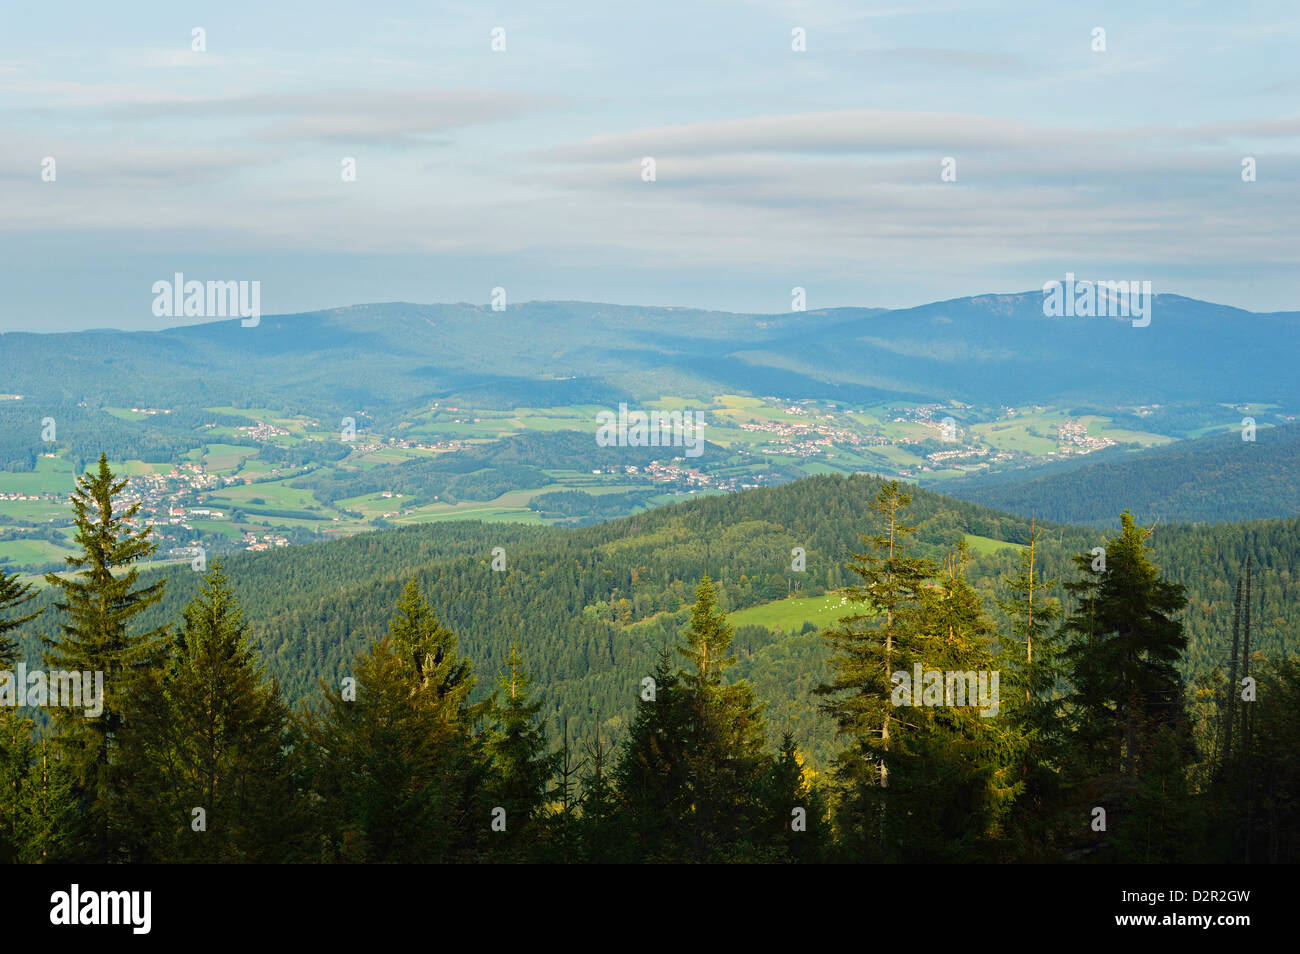 View of the Bavarian Forest, near Furth im Wald, Bavaria, Germany, Europe - Stock Image